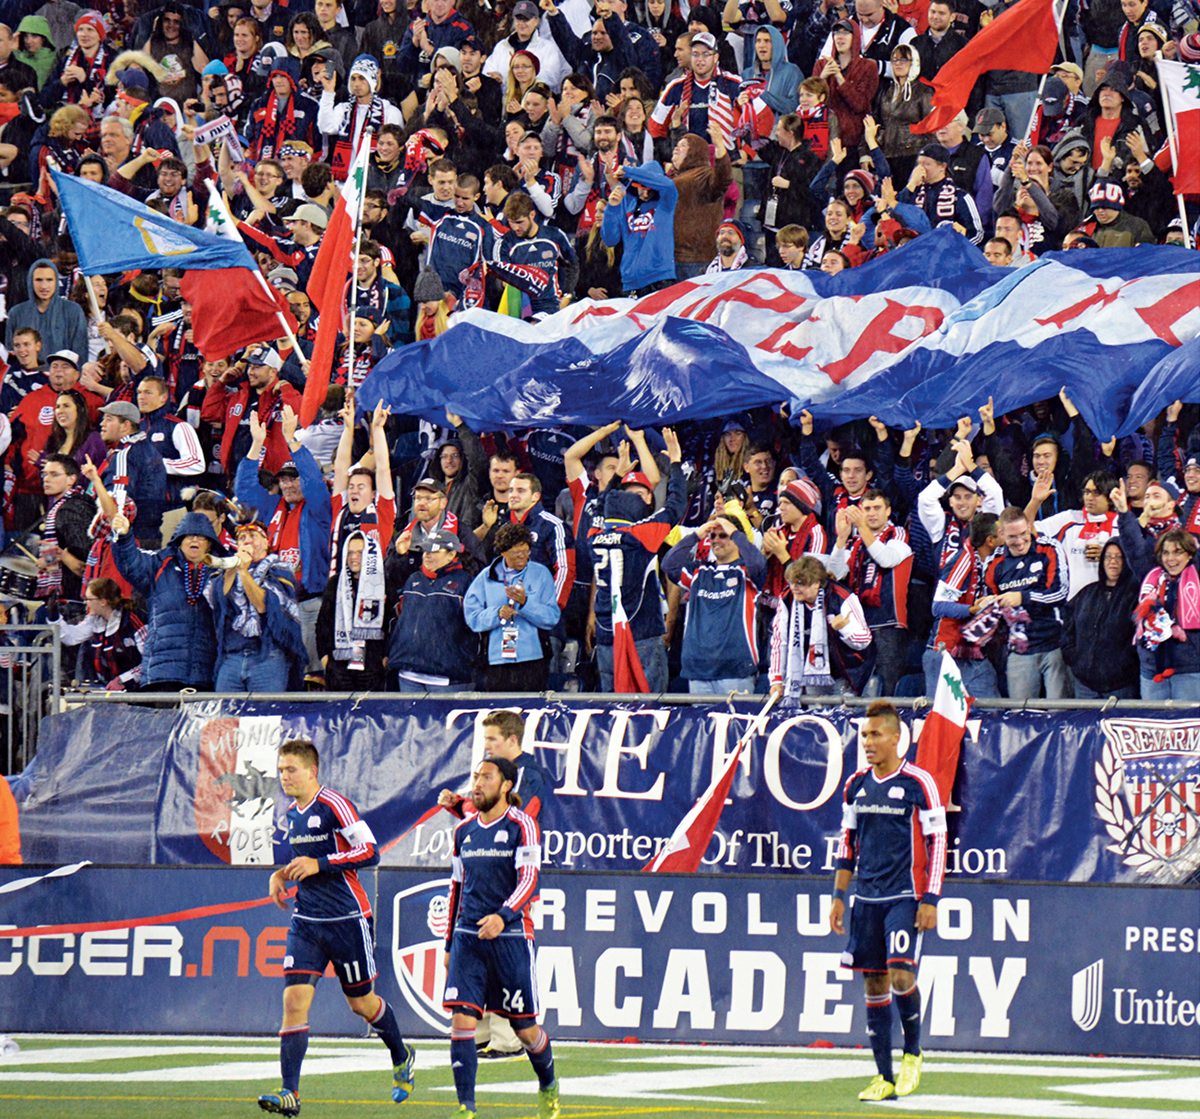 new england revolution 2